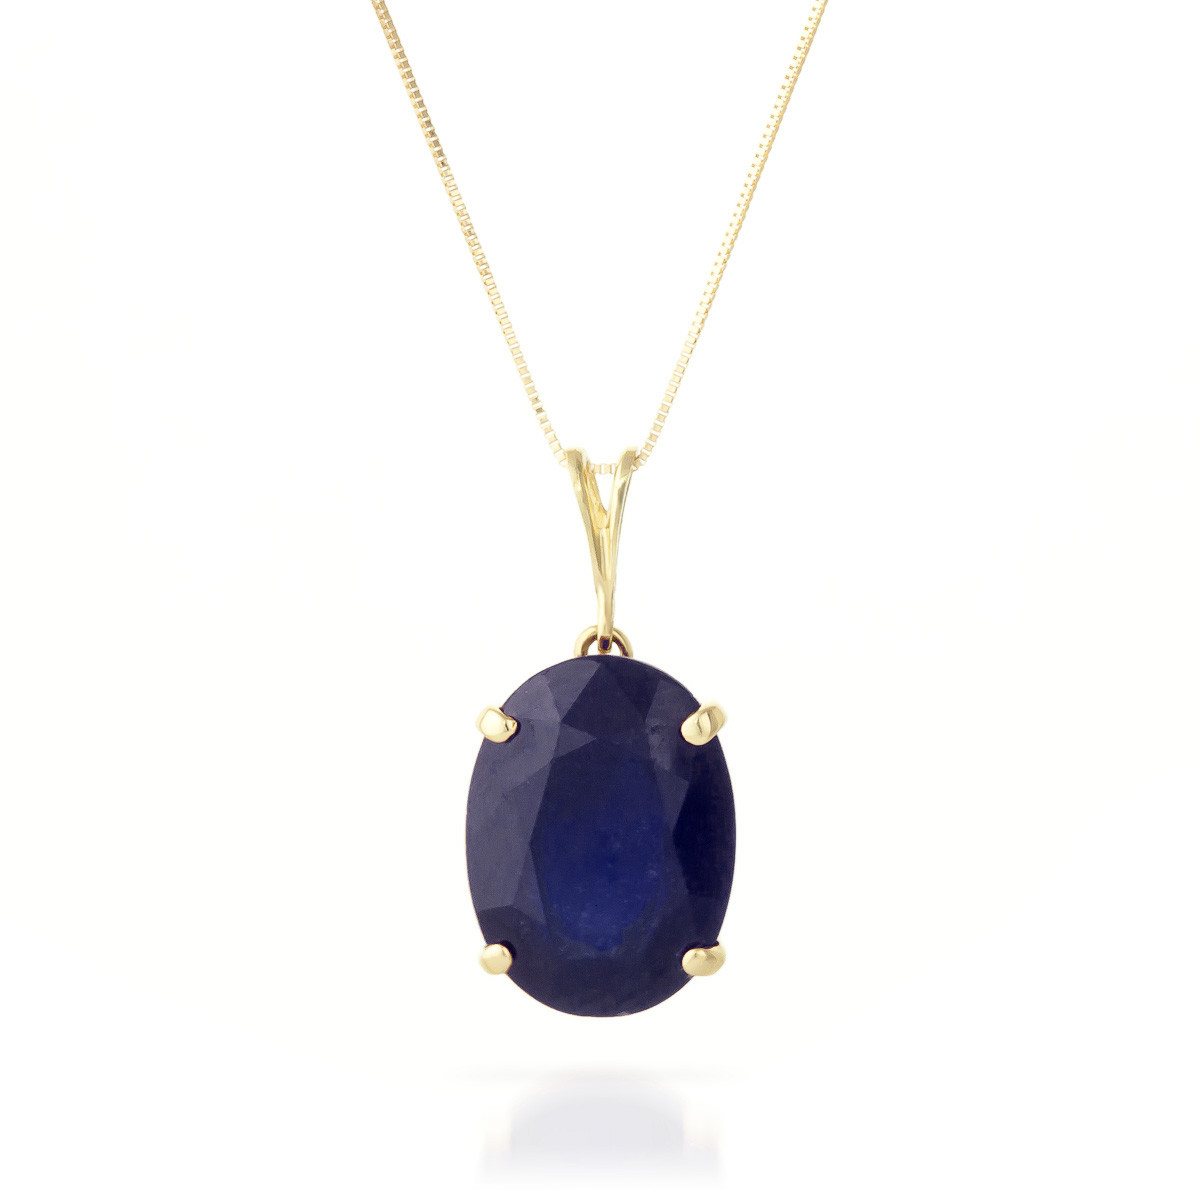 Sapphire Oval Pendant Necklace 8.5 ct in 9ct Gold - 2553Y ...